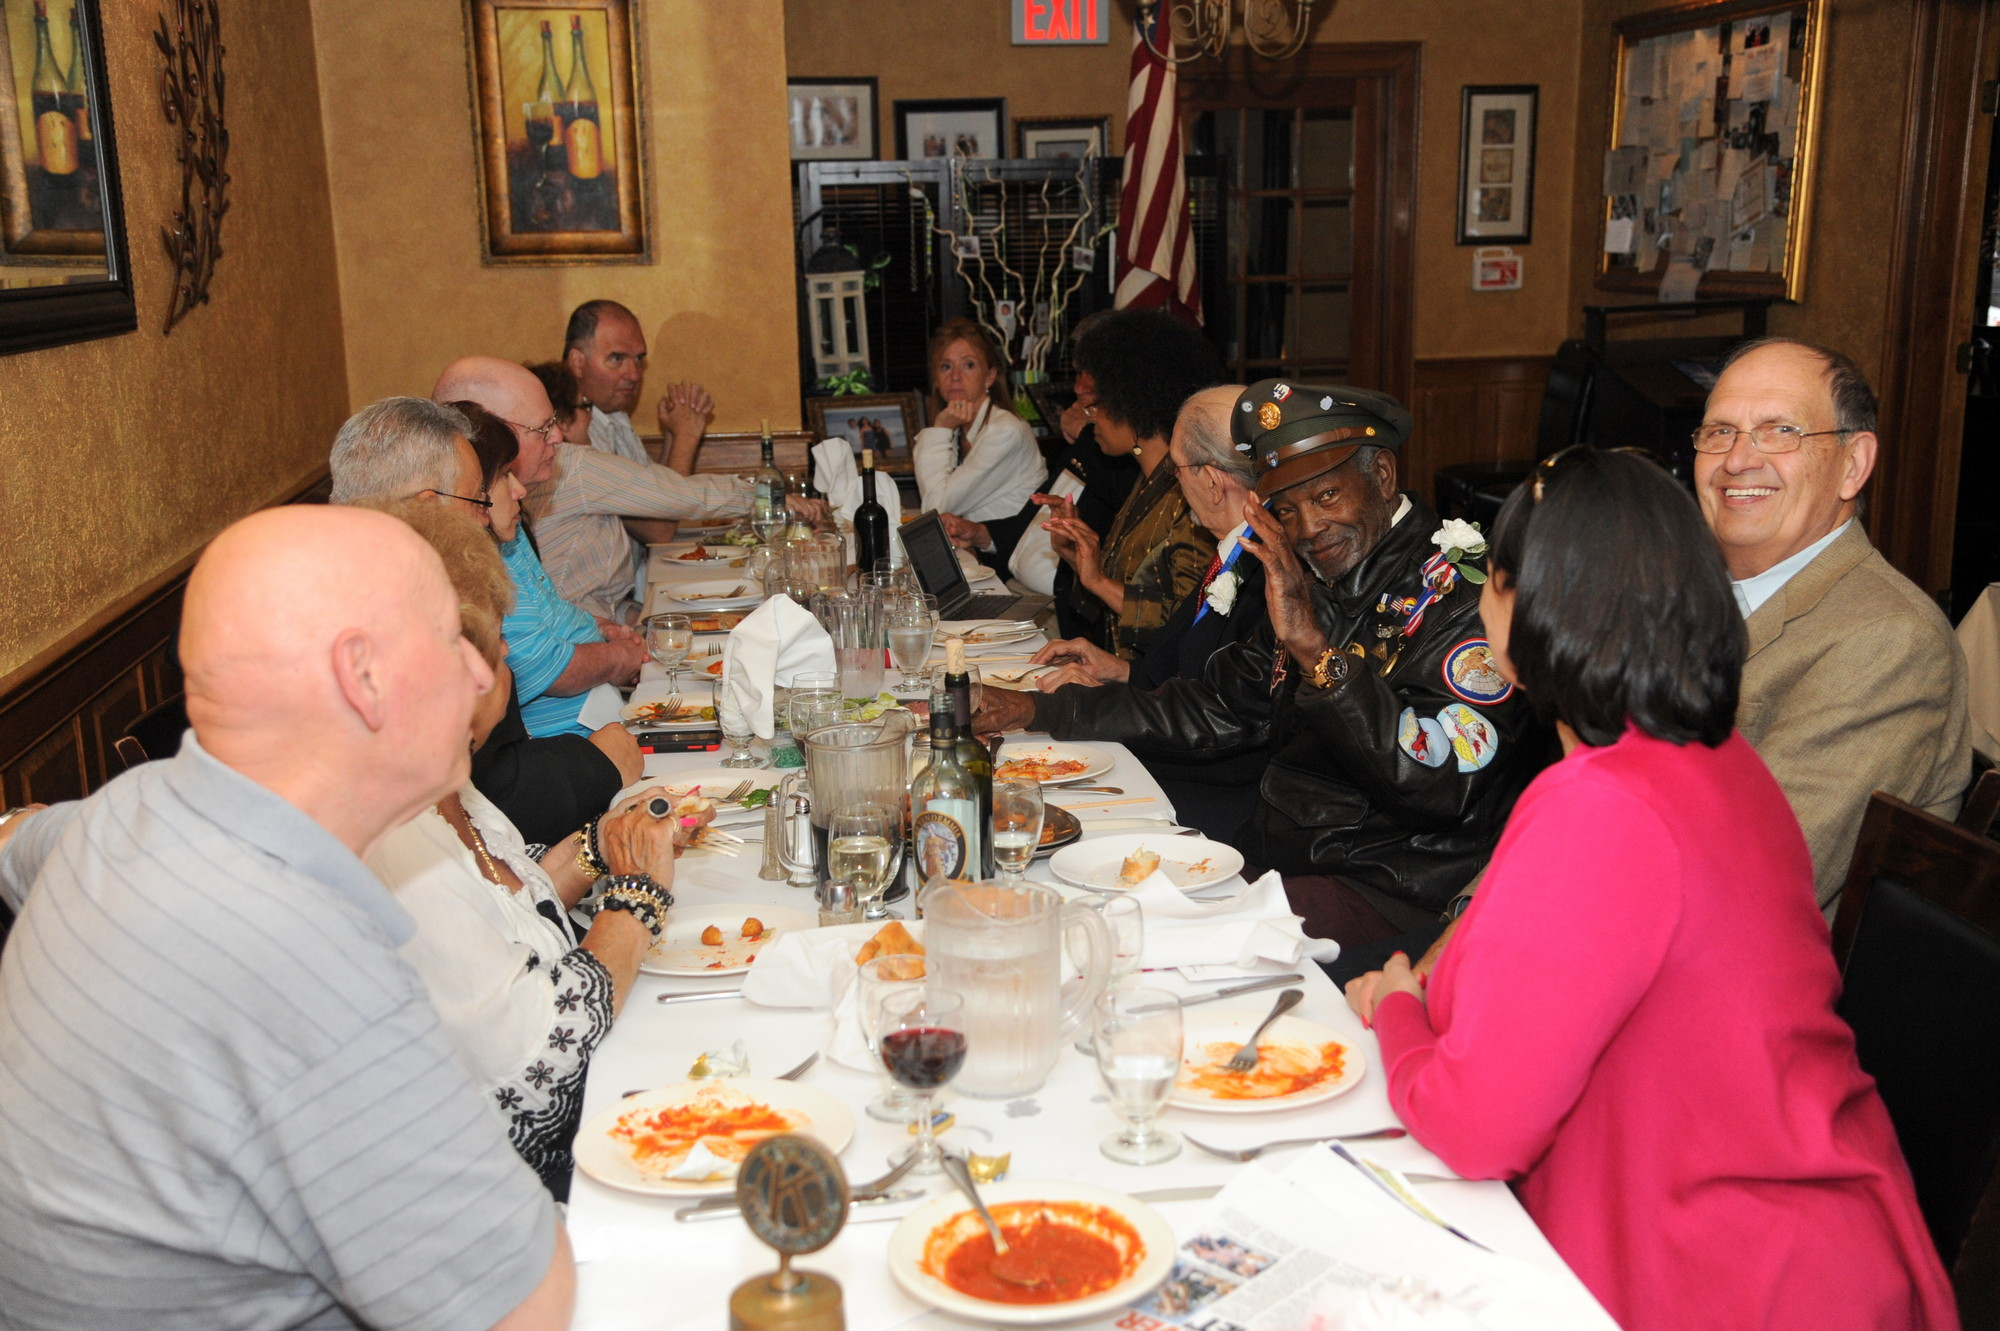 Kiwanis members dine and chat with some decorated heroes.